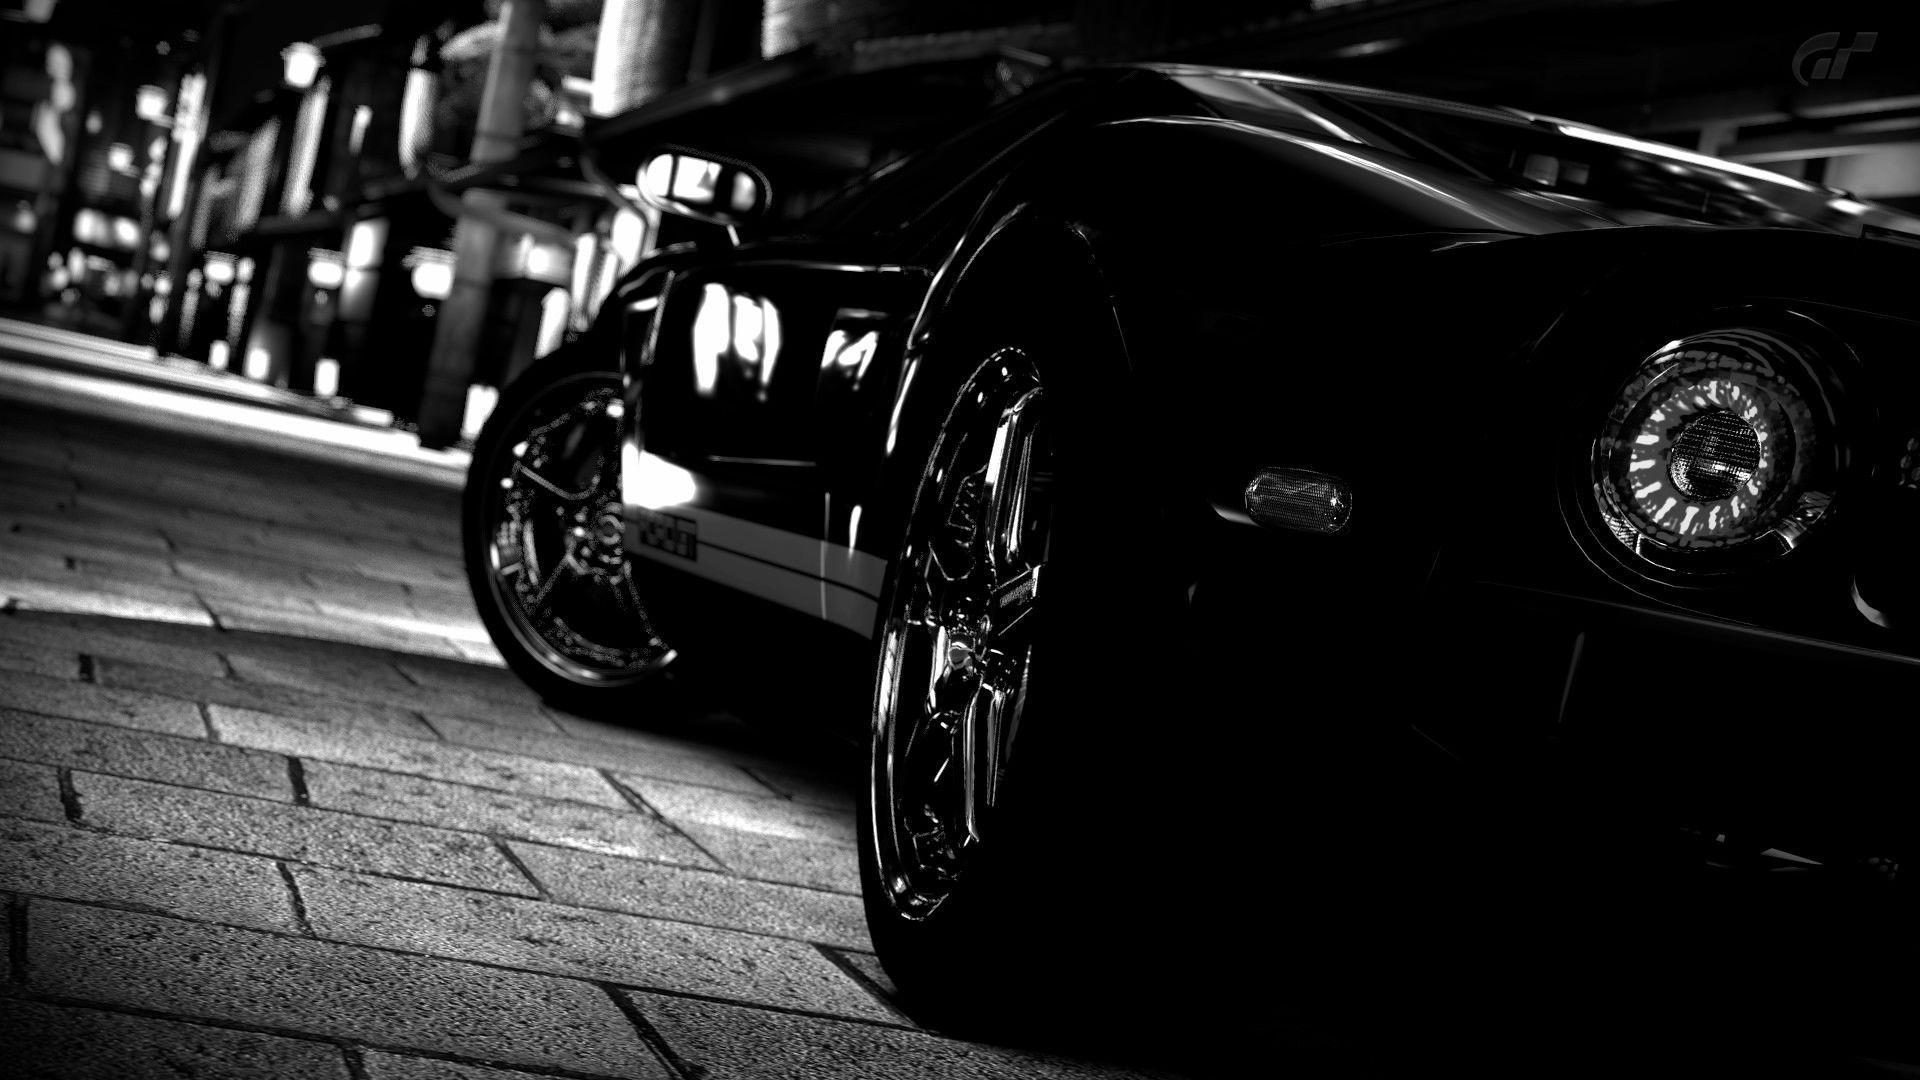 Hd wallpaper download for pc 1080p - Wallpapers For Black Ferrari Hd Wallpapers 1080p Download